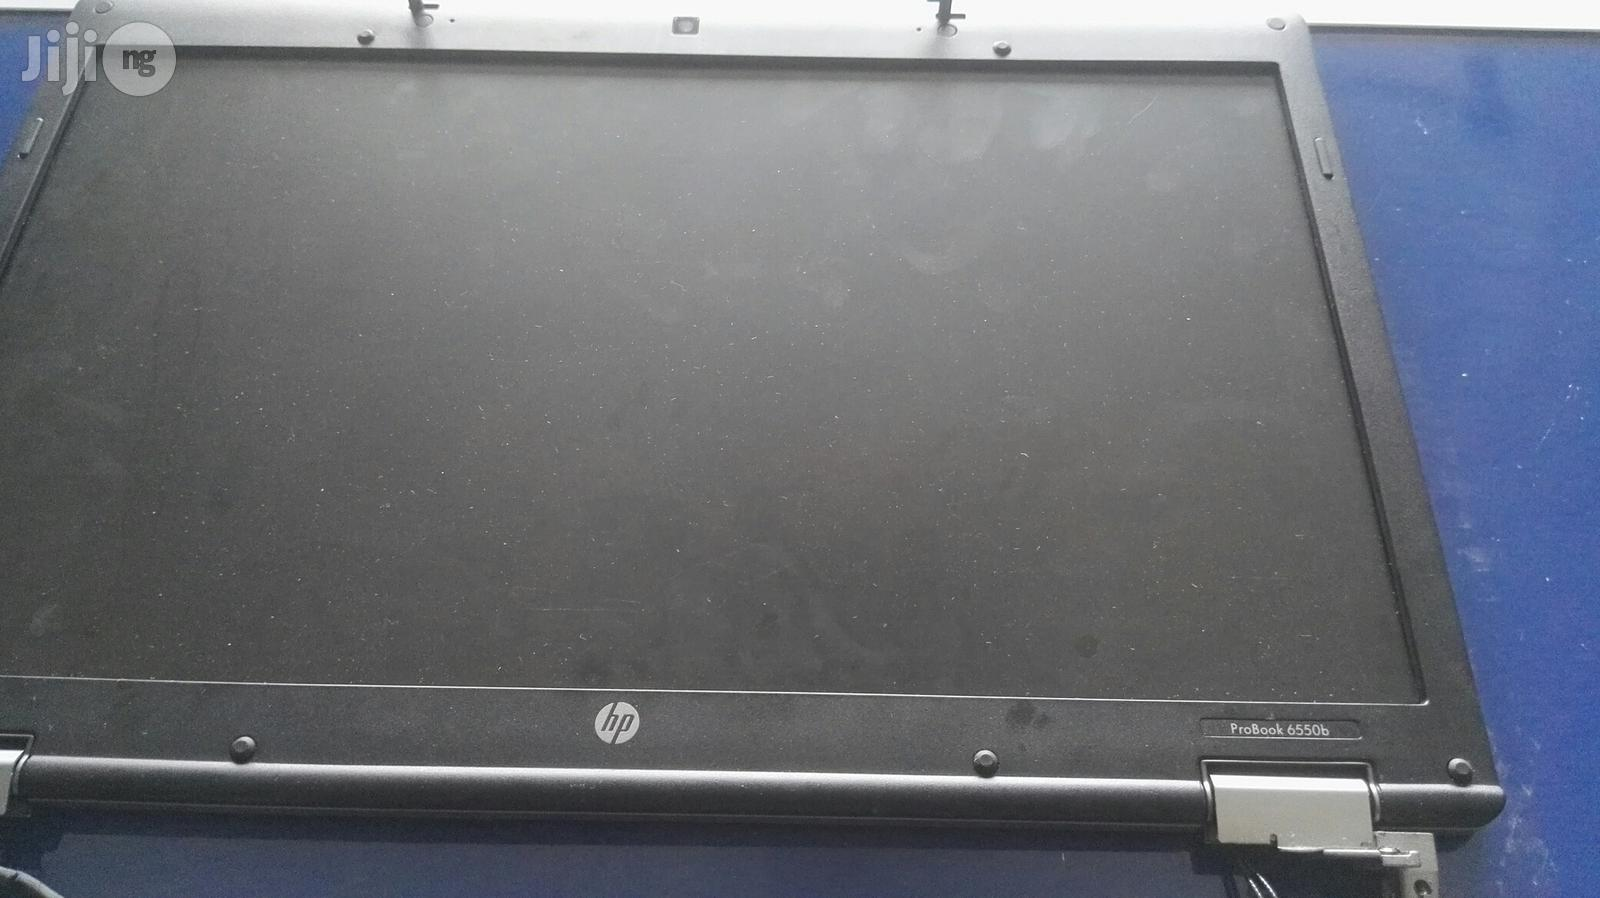 LCD Display Screen For HP Probook 6550b, 15.6inch Led-screen | TV & DVD Equipment for sale in Alimosho, Lagos State, Nigeria